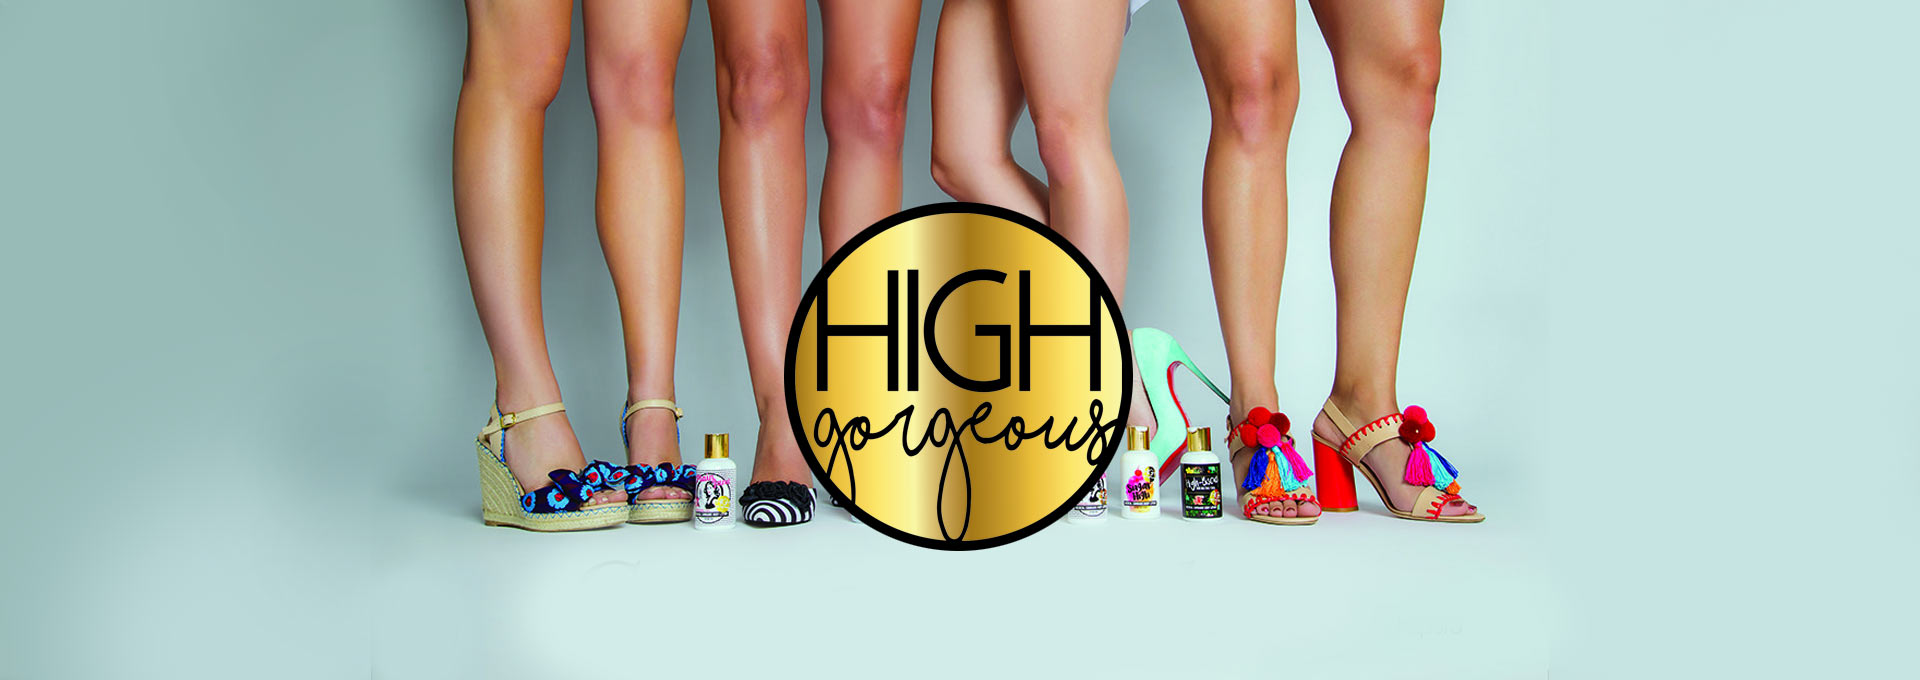 Yummi Karma Review | High Gorgeous Is Cannabis Products For Our Generation